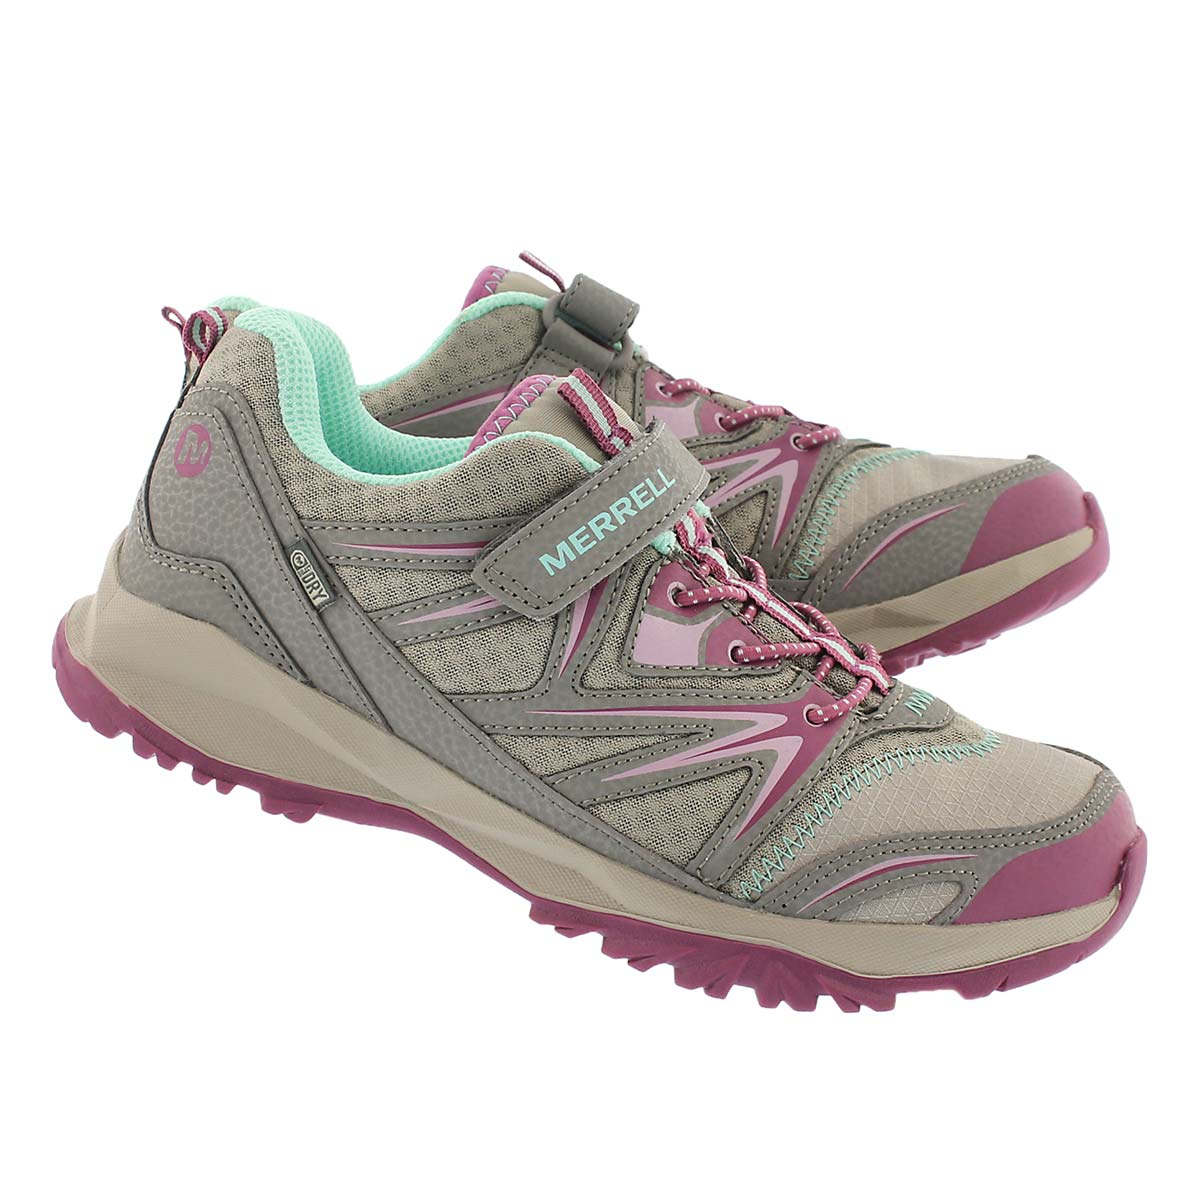 Grls Capra bolt wtpf tpe/by lace up shoe